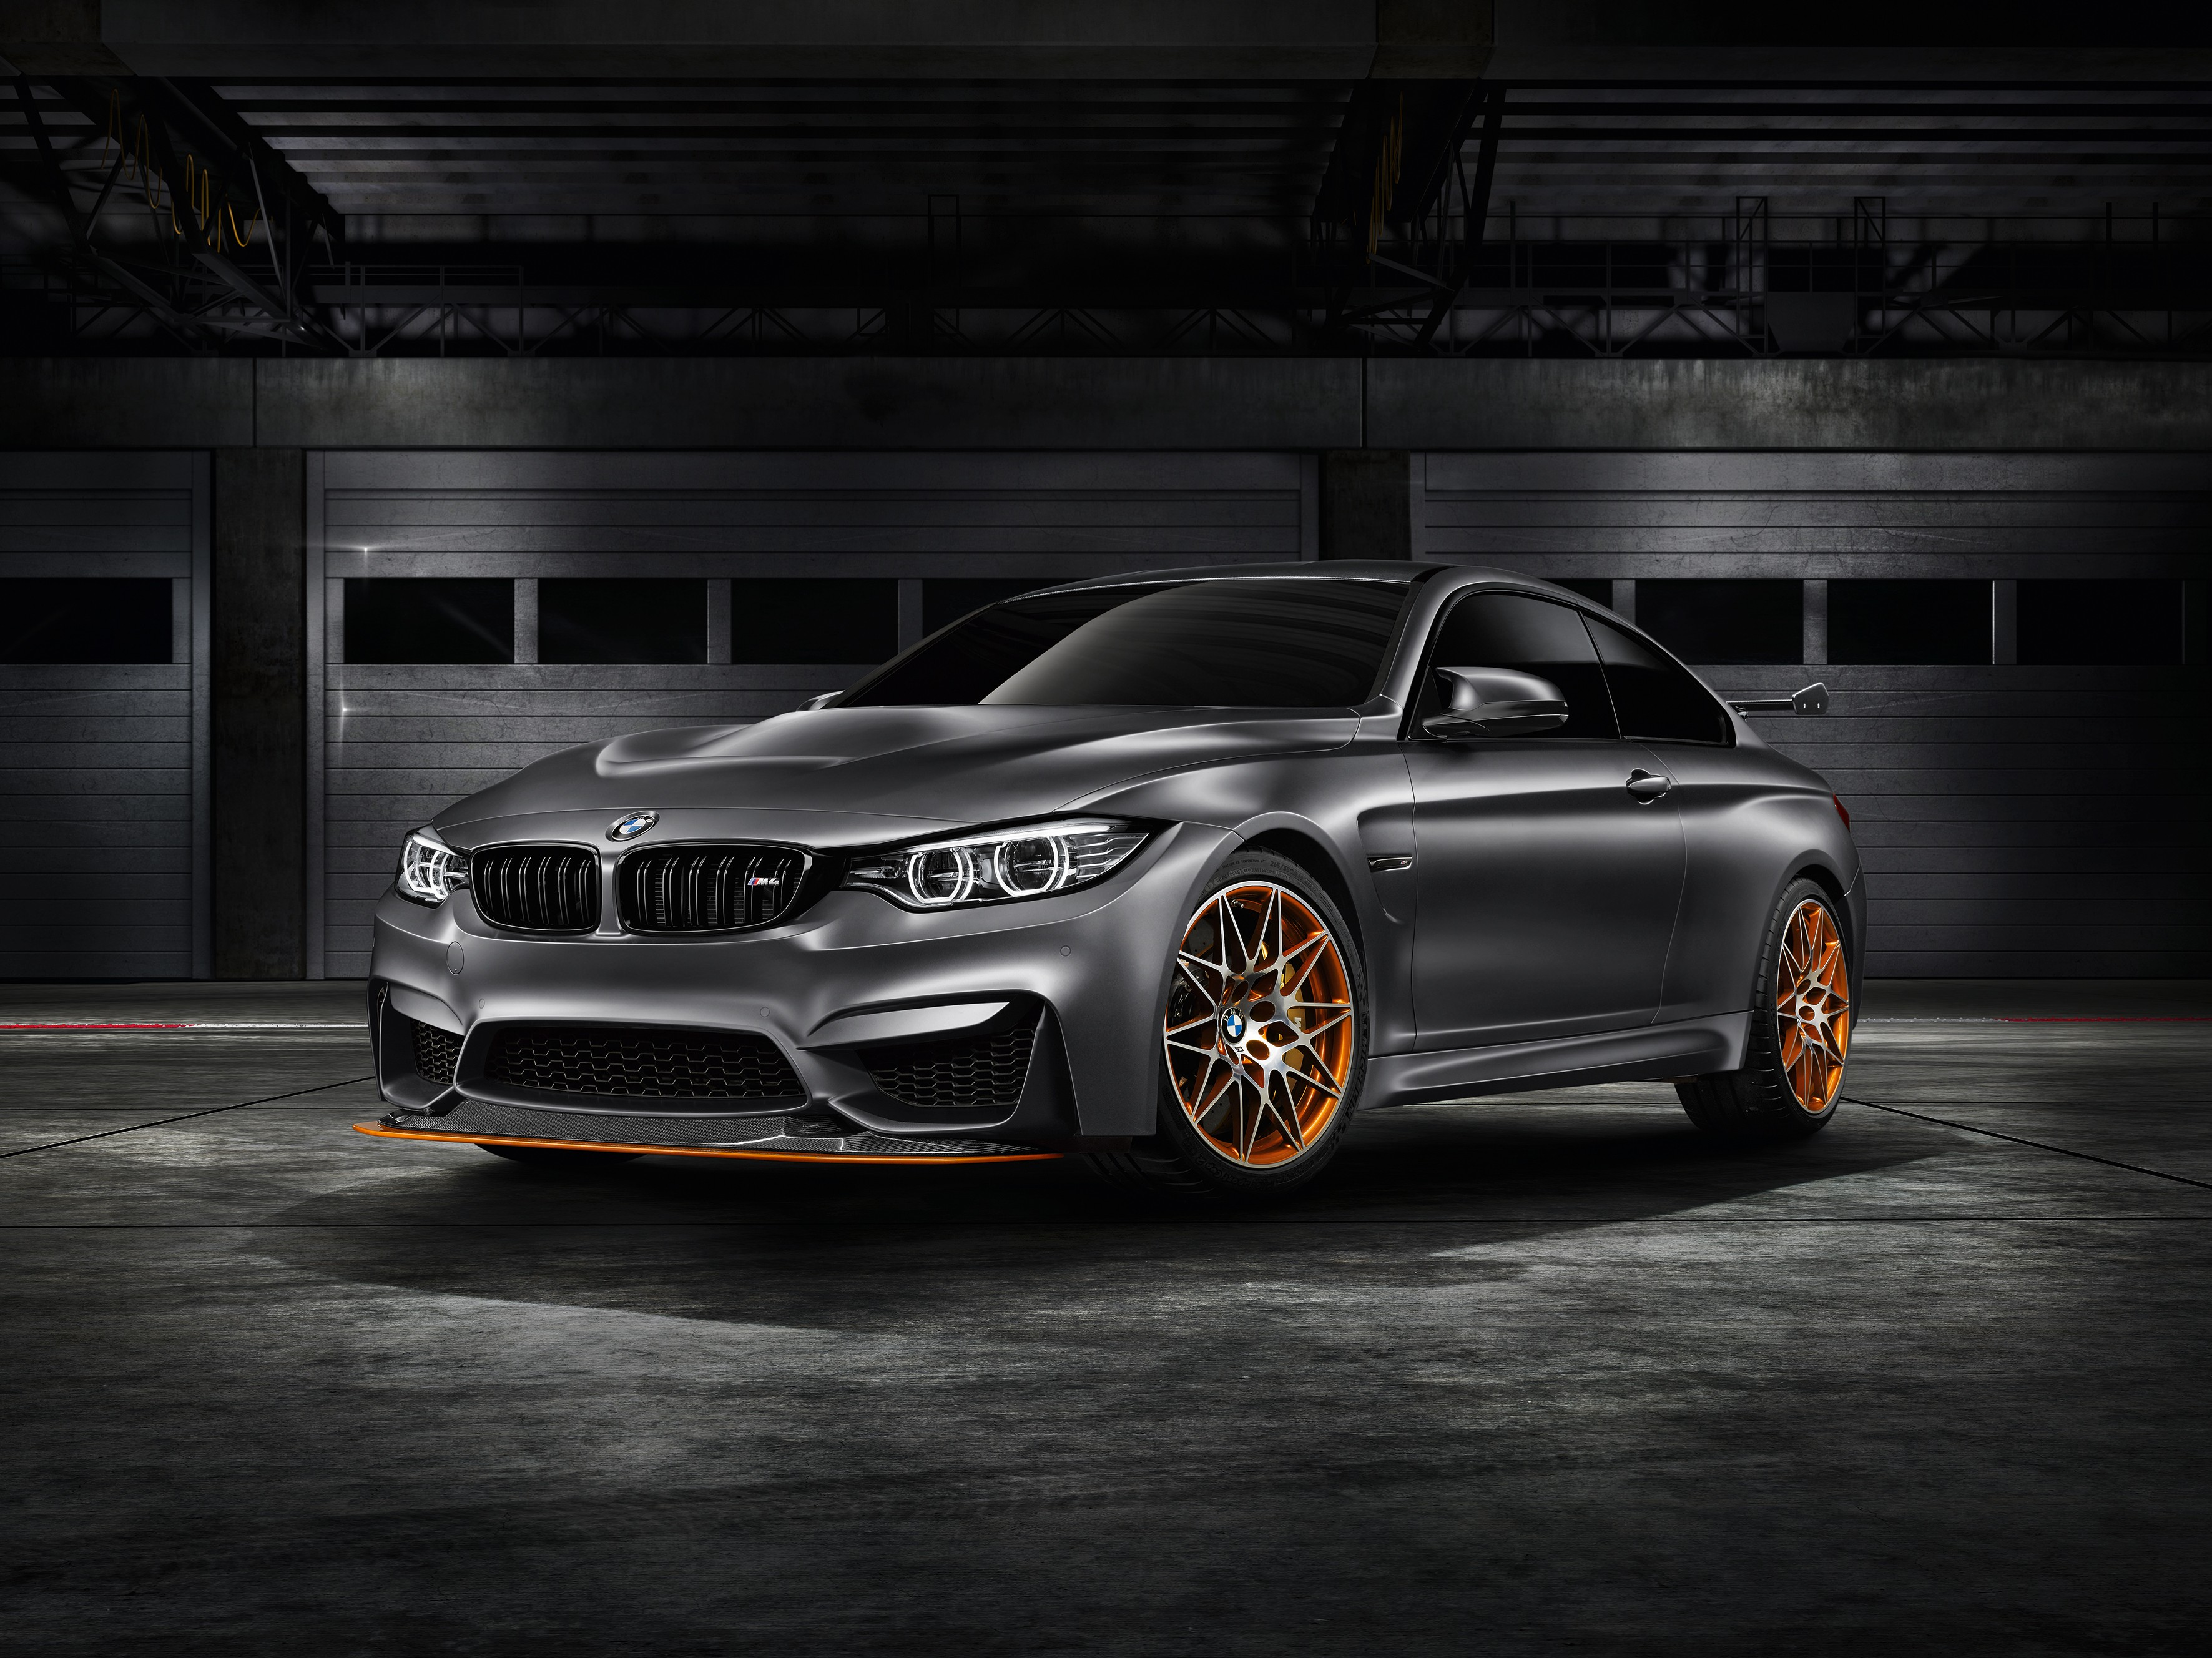 bmw concept m4 gts makes world debut at pebble beach with oled lighting autoevolution. Black Bedroom Furniture Sets. Home Design Ideas